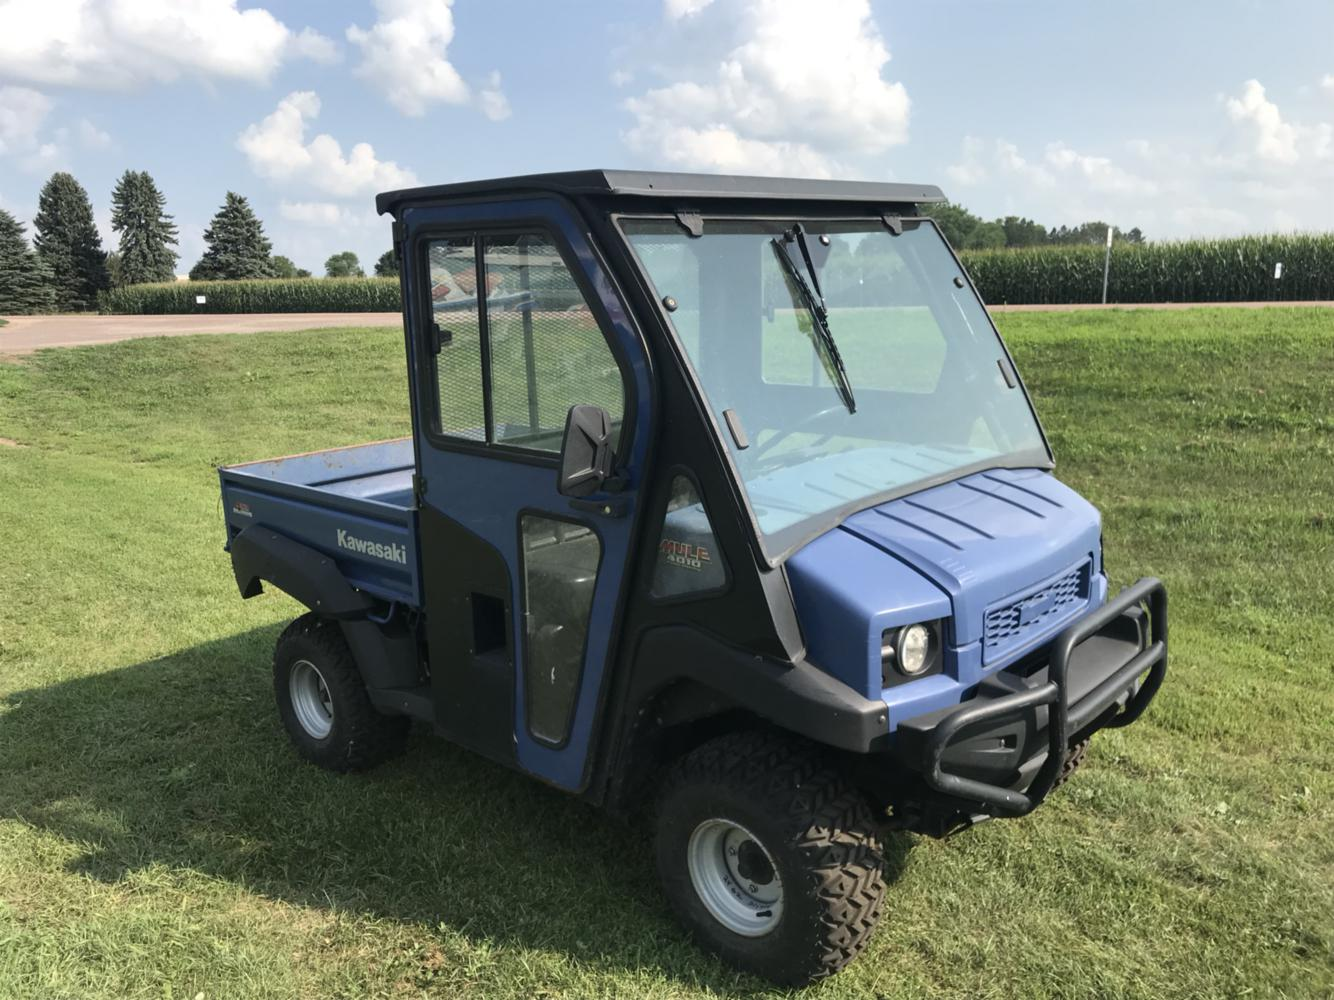 2010 Kawasaki MULE 4010 HARD CAB WITH HEATER